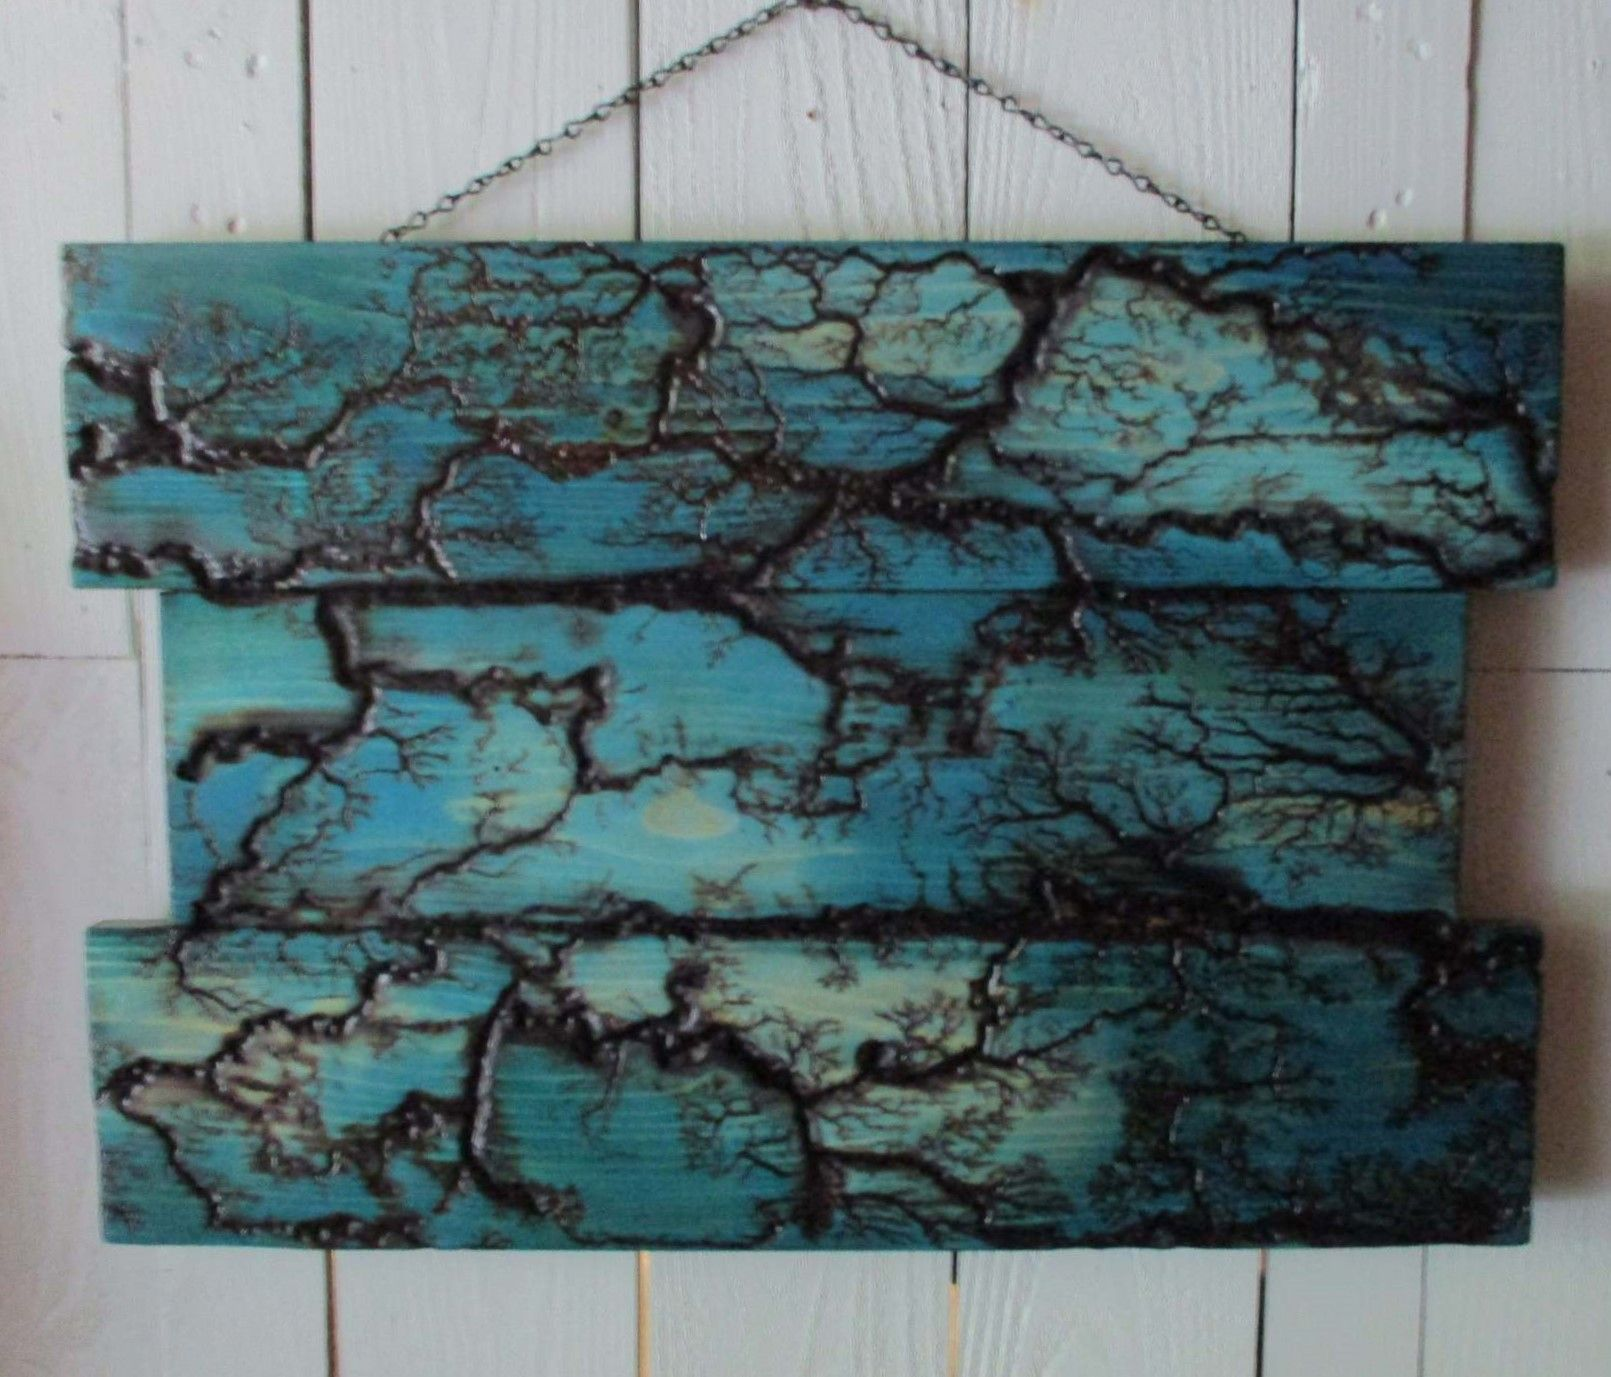 Electrified painted wood blue maze lichtenberg art fractal wood